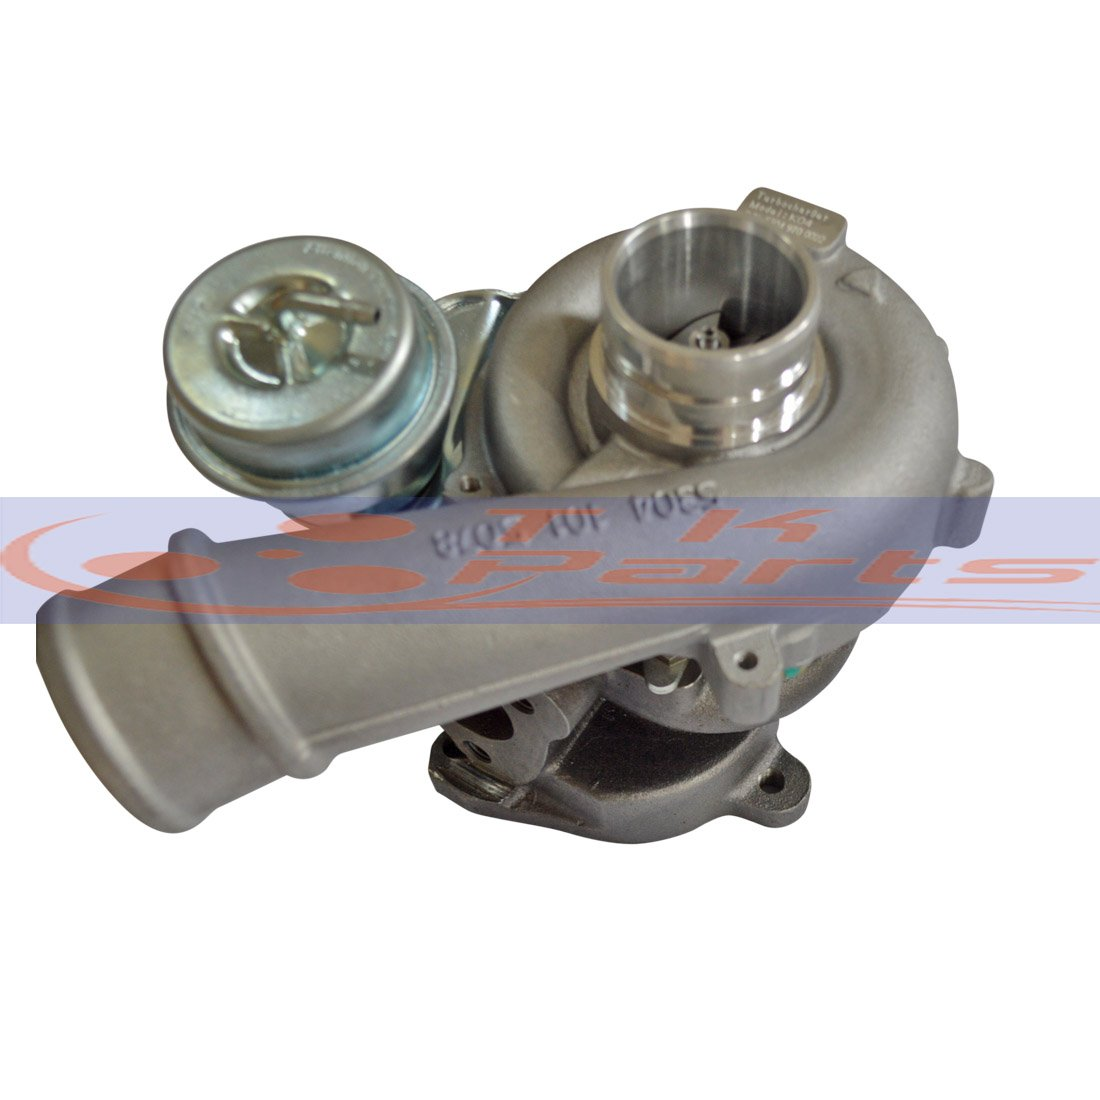 Amazon.com: TKParts New K04 22 53049700022 53049880022 53049700020 53049880020 Turbo Charger For AUDI S3 TT Quattro 1.8T AMK APX AJH APY 1.8L 210HP: ...